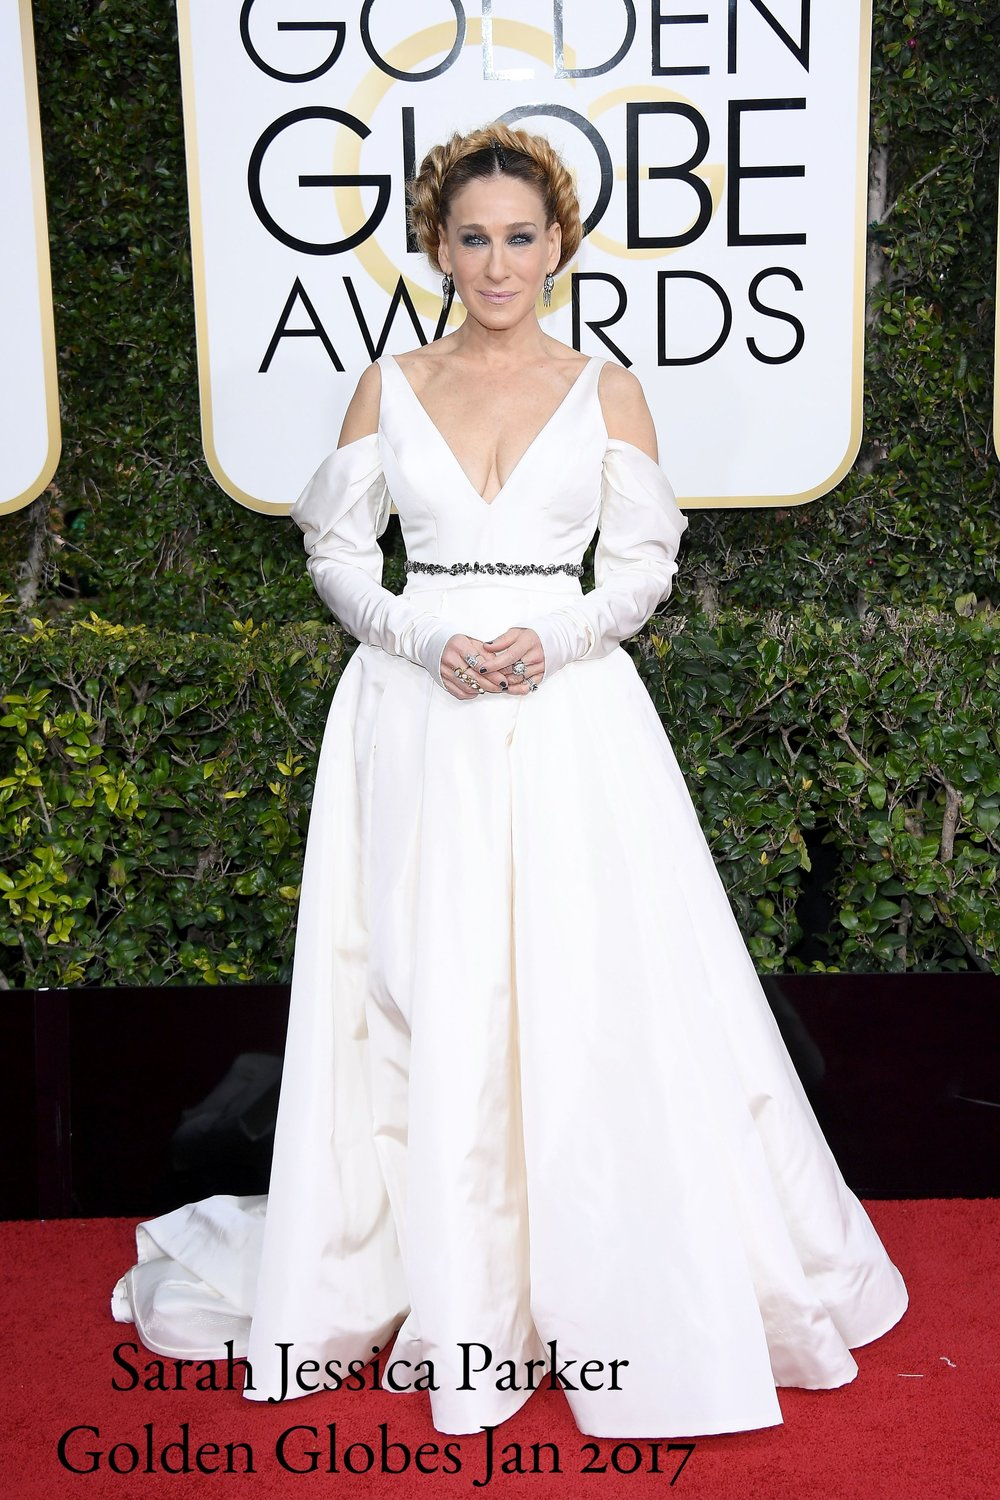 Sarah-Jessica-Parker-Dress-Golden-Globes-2017.jpg